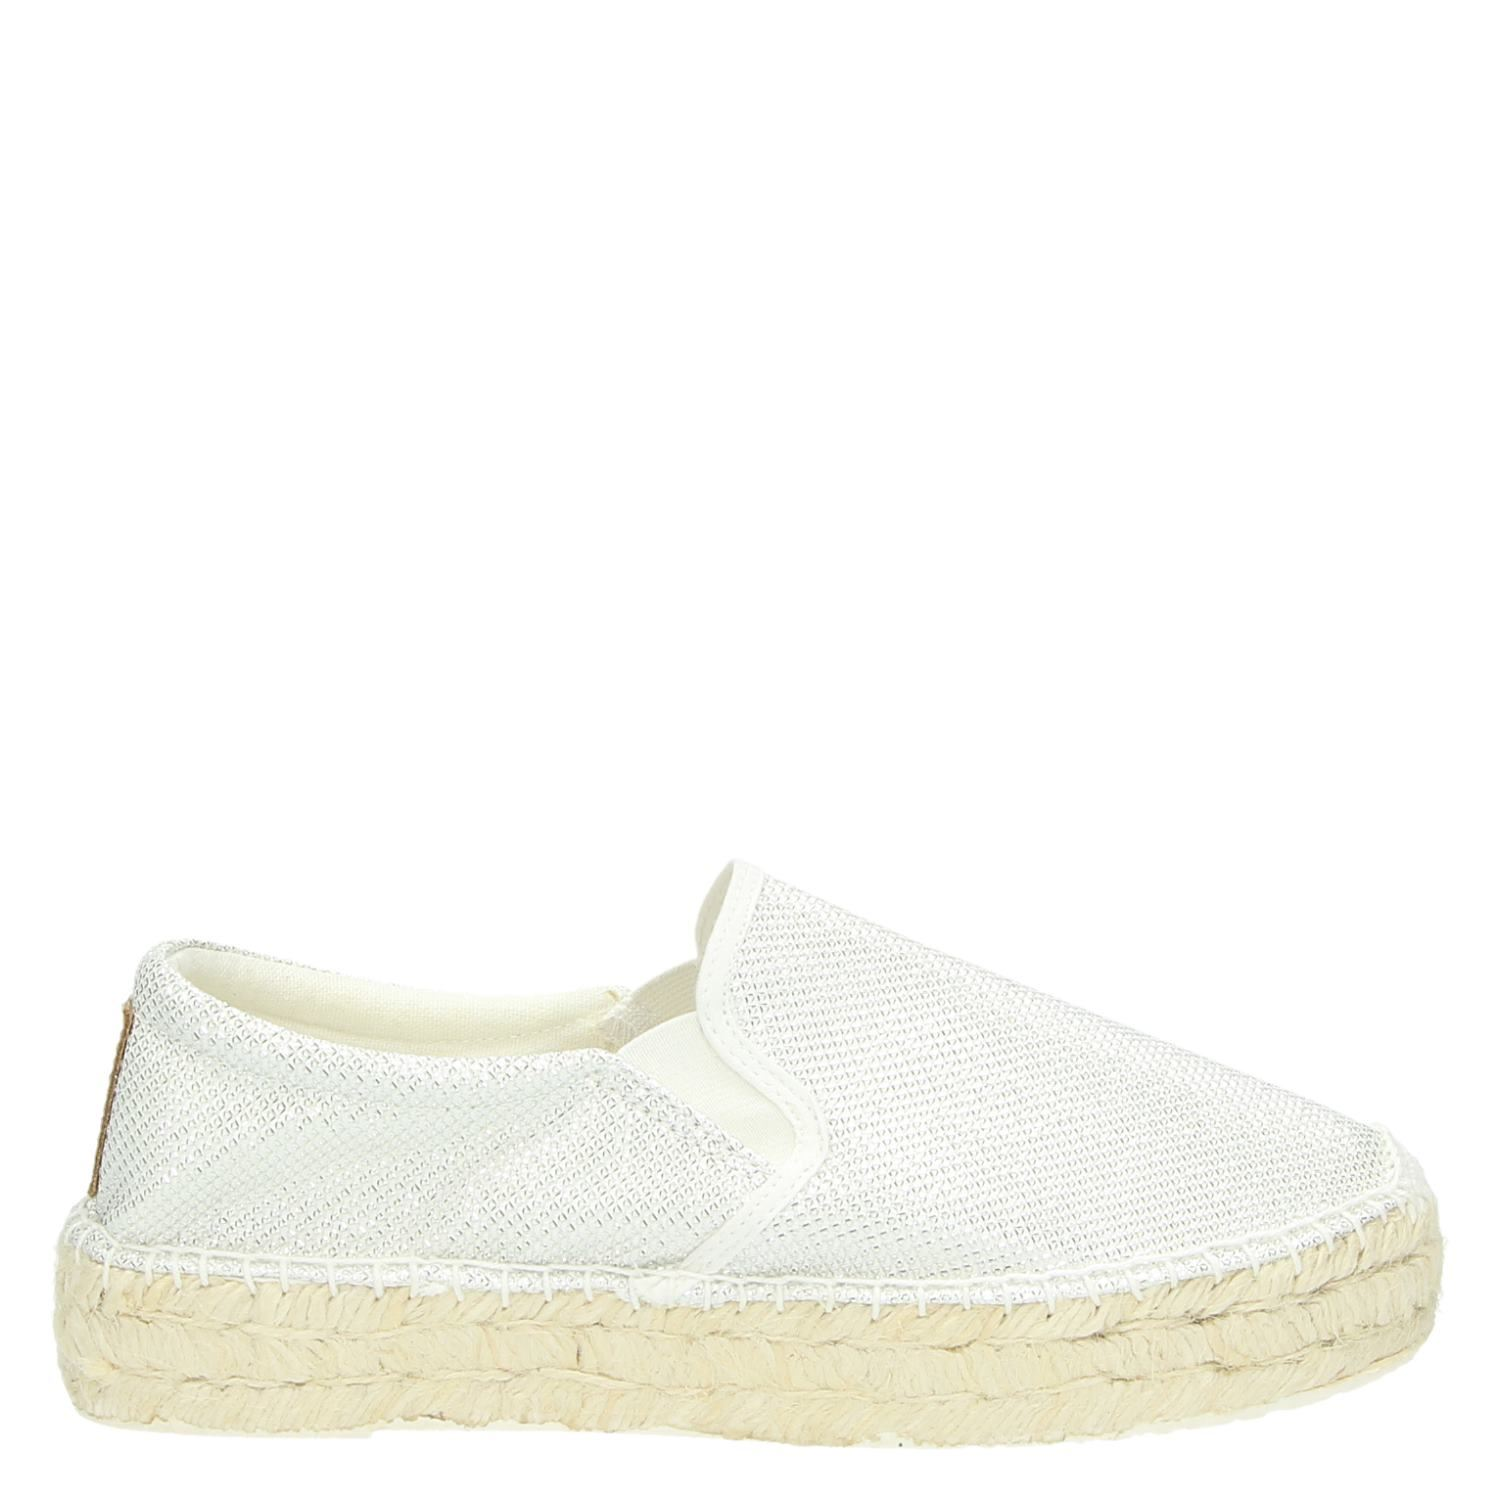 Dames Dames Dames Replay Wit Espadrilles Replay Wit Replay Wit Espadrilles Dames Espadrilles Replay OPk8nw0